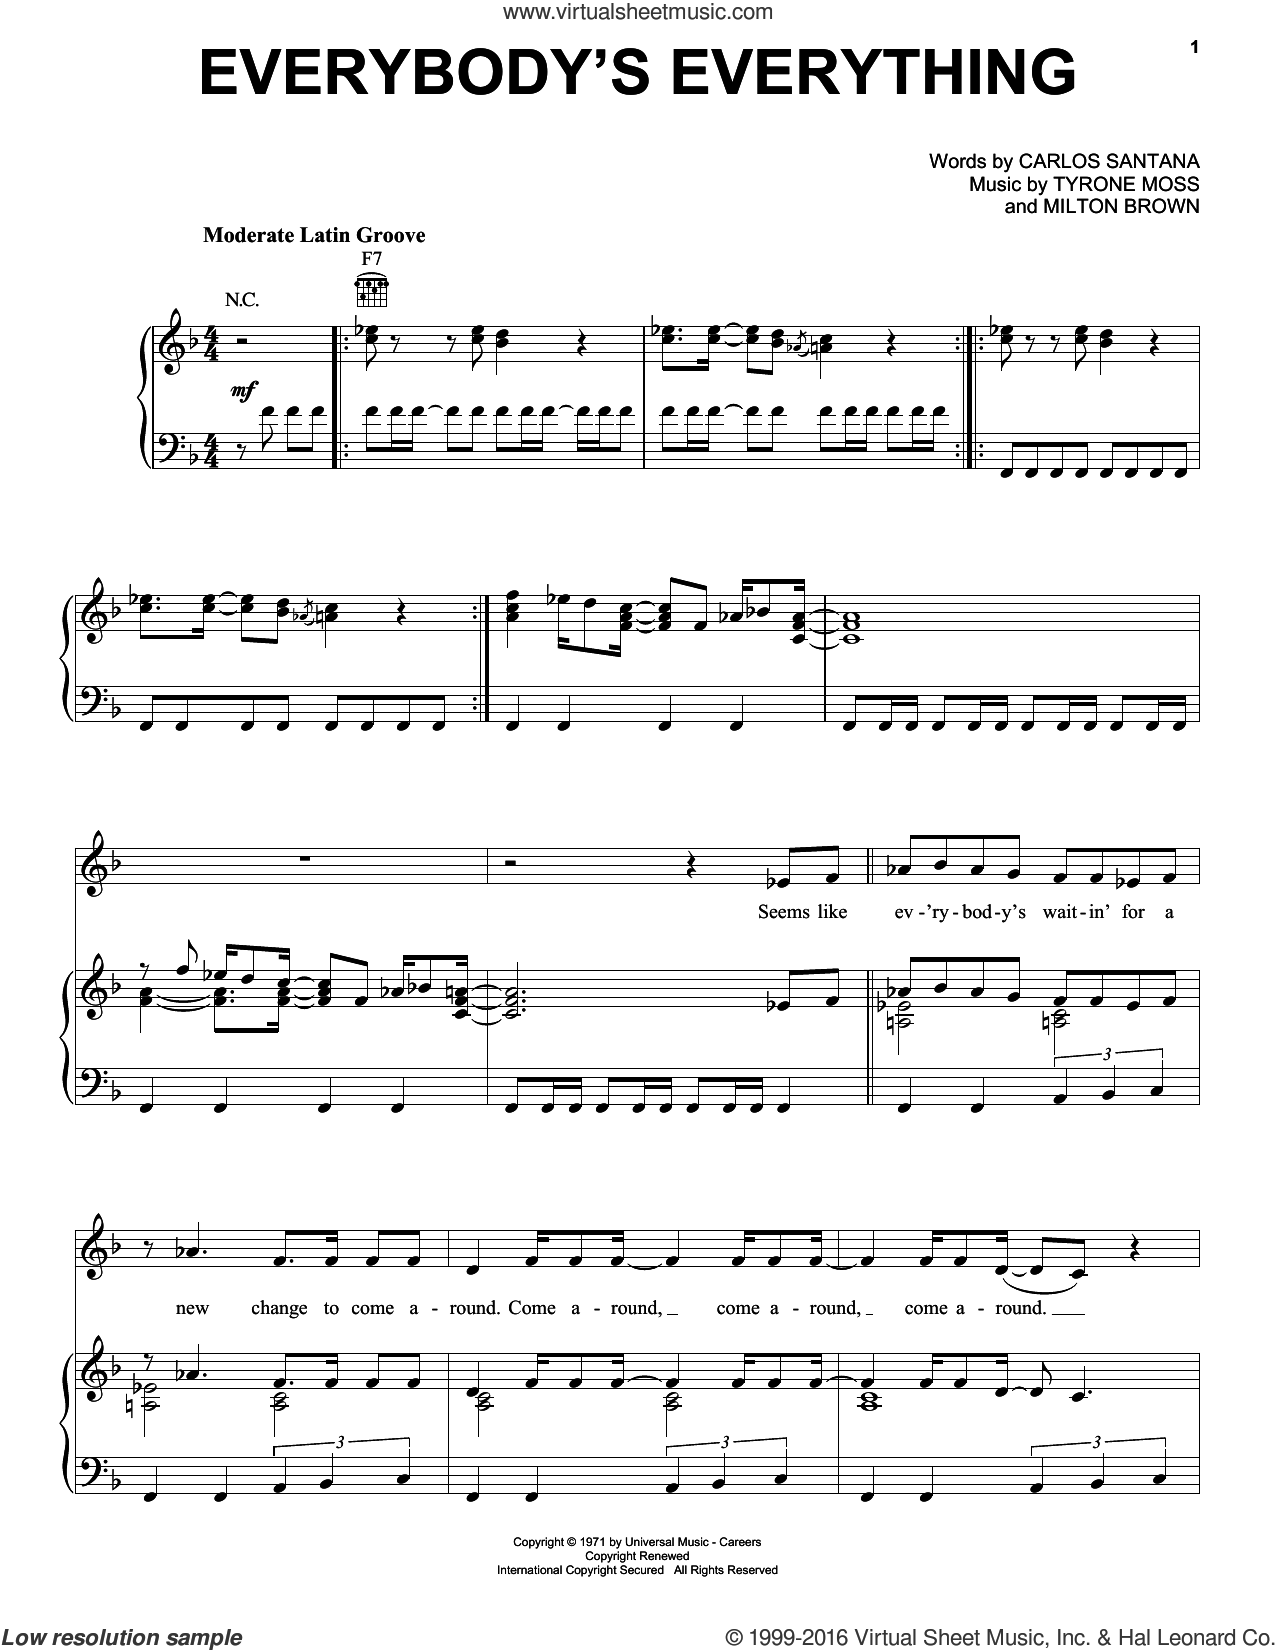 Everybody's Everything sheet music for voice, piano or guitar by Carlos Santana. Score Image Preview.